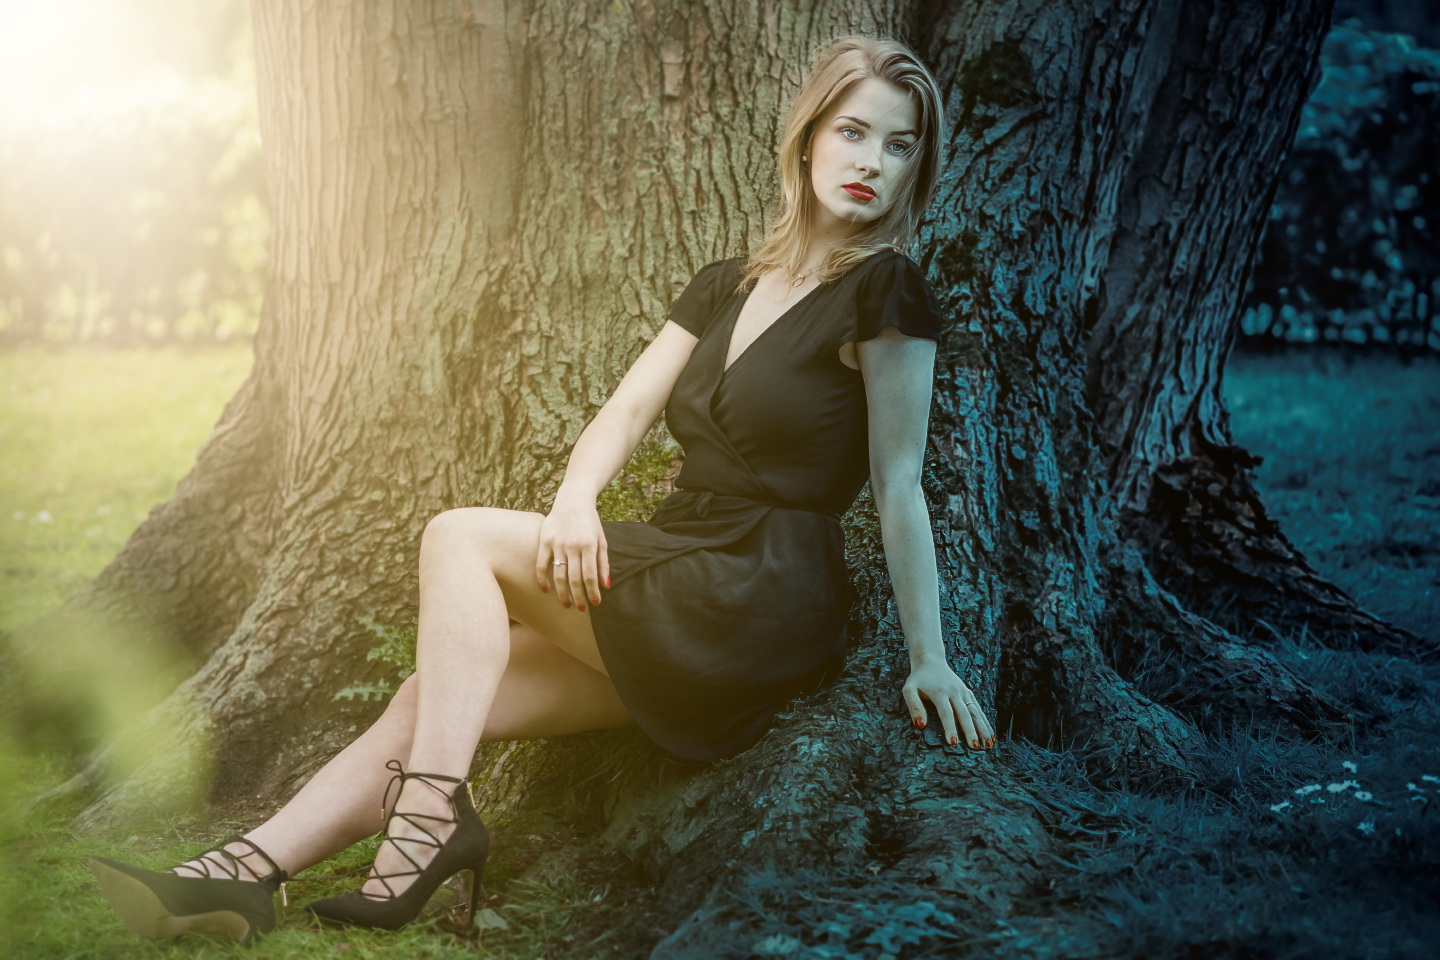 Photoshop & Lightroom Fotokurse und Modelsharings im Fotoworkshop Kiel